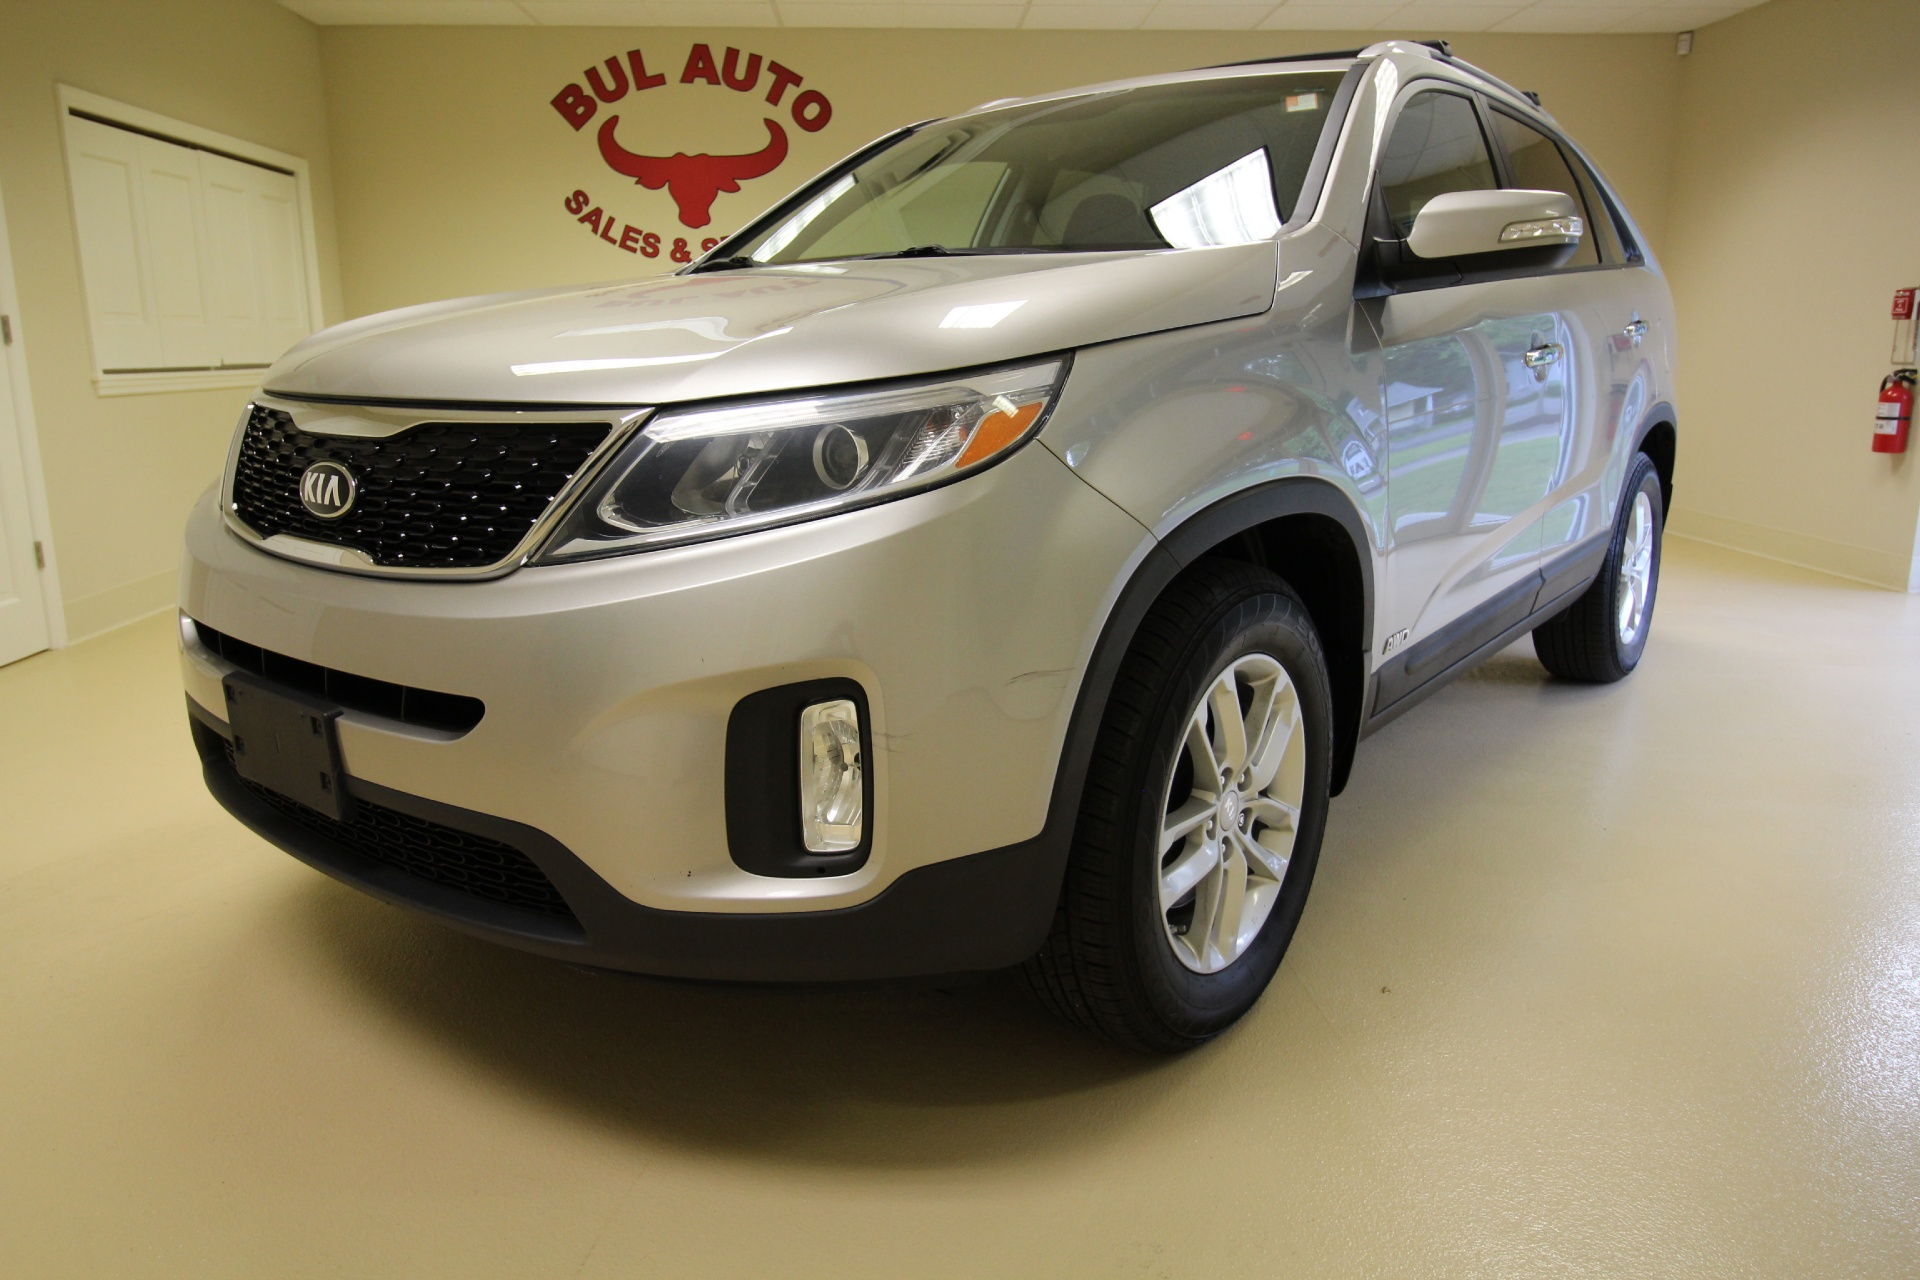 2014 kia sorento lx v6 awd stock 16132 for sale near. Black Bedroom Furniture Sets. Home Design Ideas